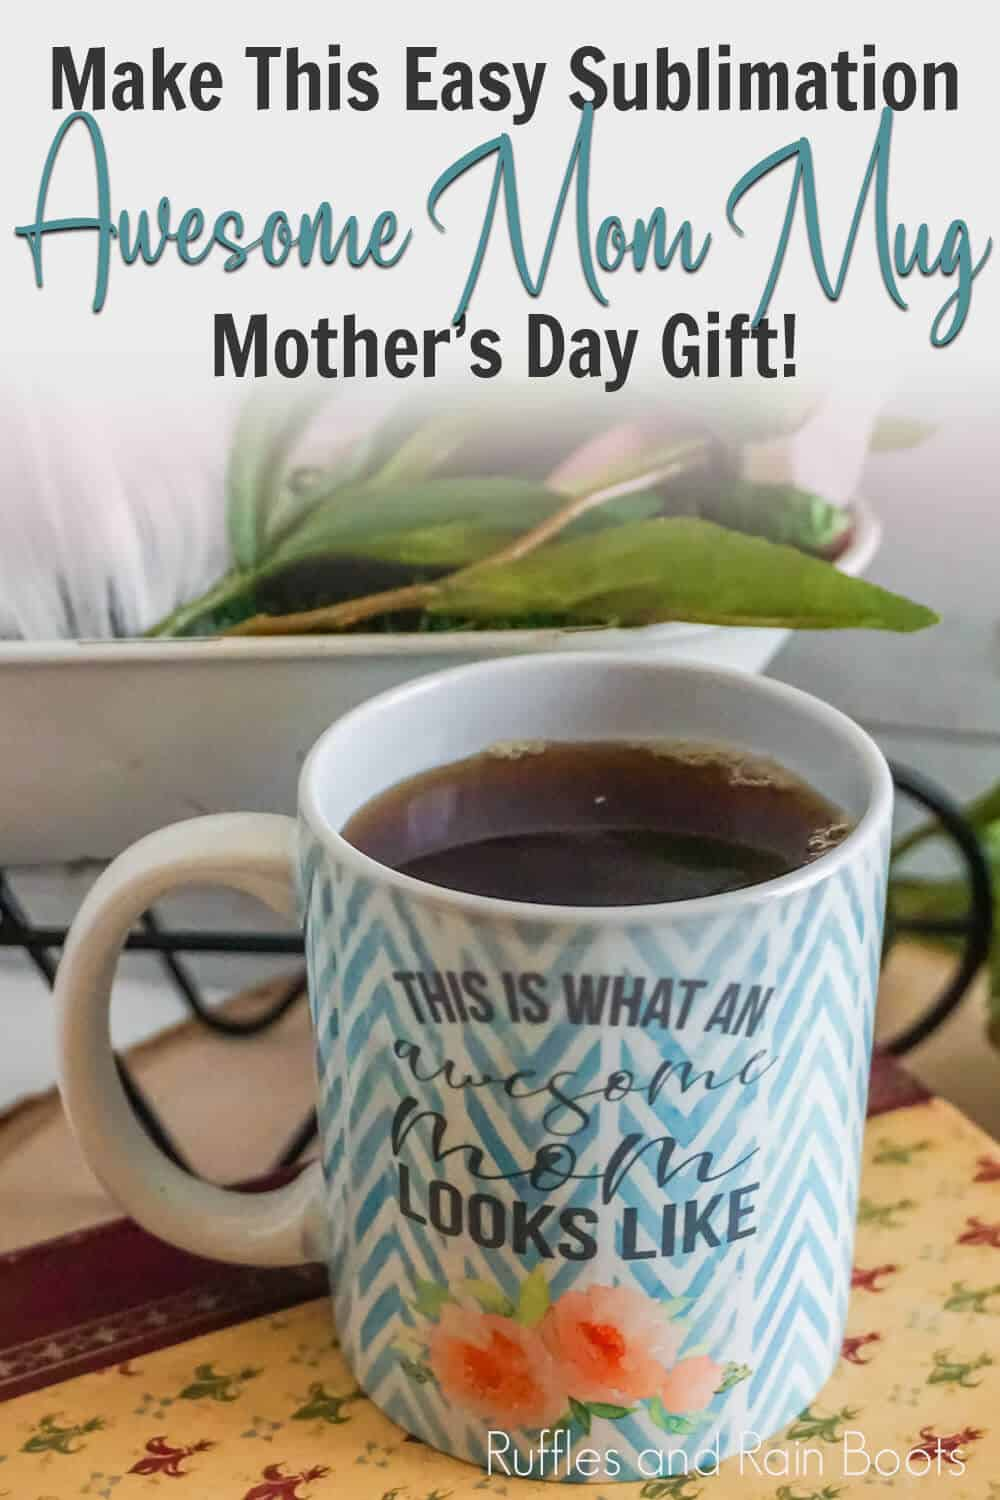 mother's day gift this is what an awesome mom looks like sublimation mug with text which reads make this easy sublimation awesome mom mug mother's day gift